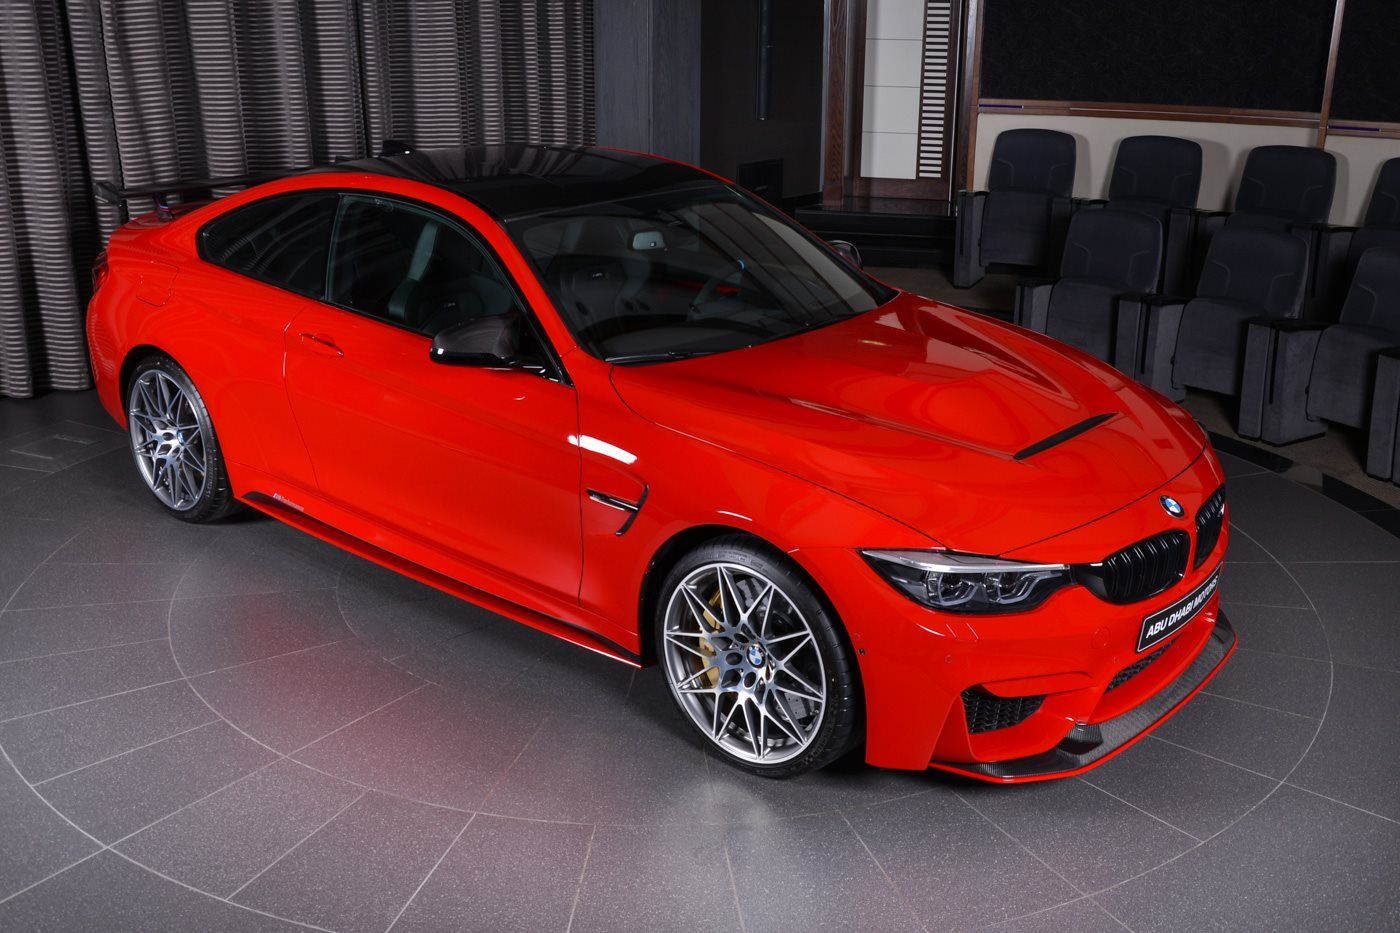 Ferrari Red Bmw M4 Is Delicious To Look At Carscoops Bmw M4 Bmw Bmw Red